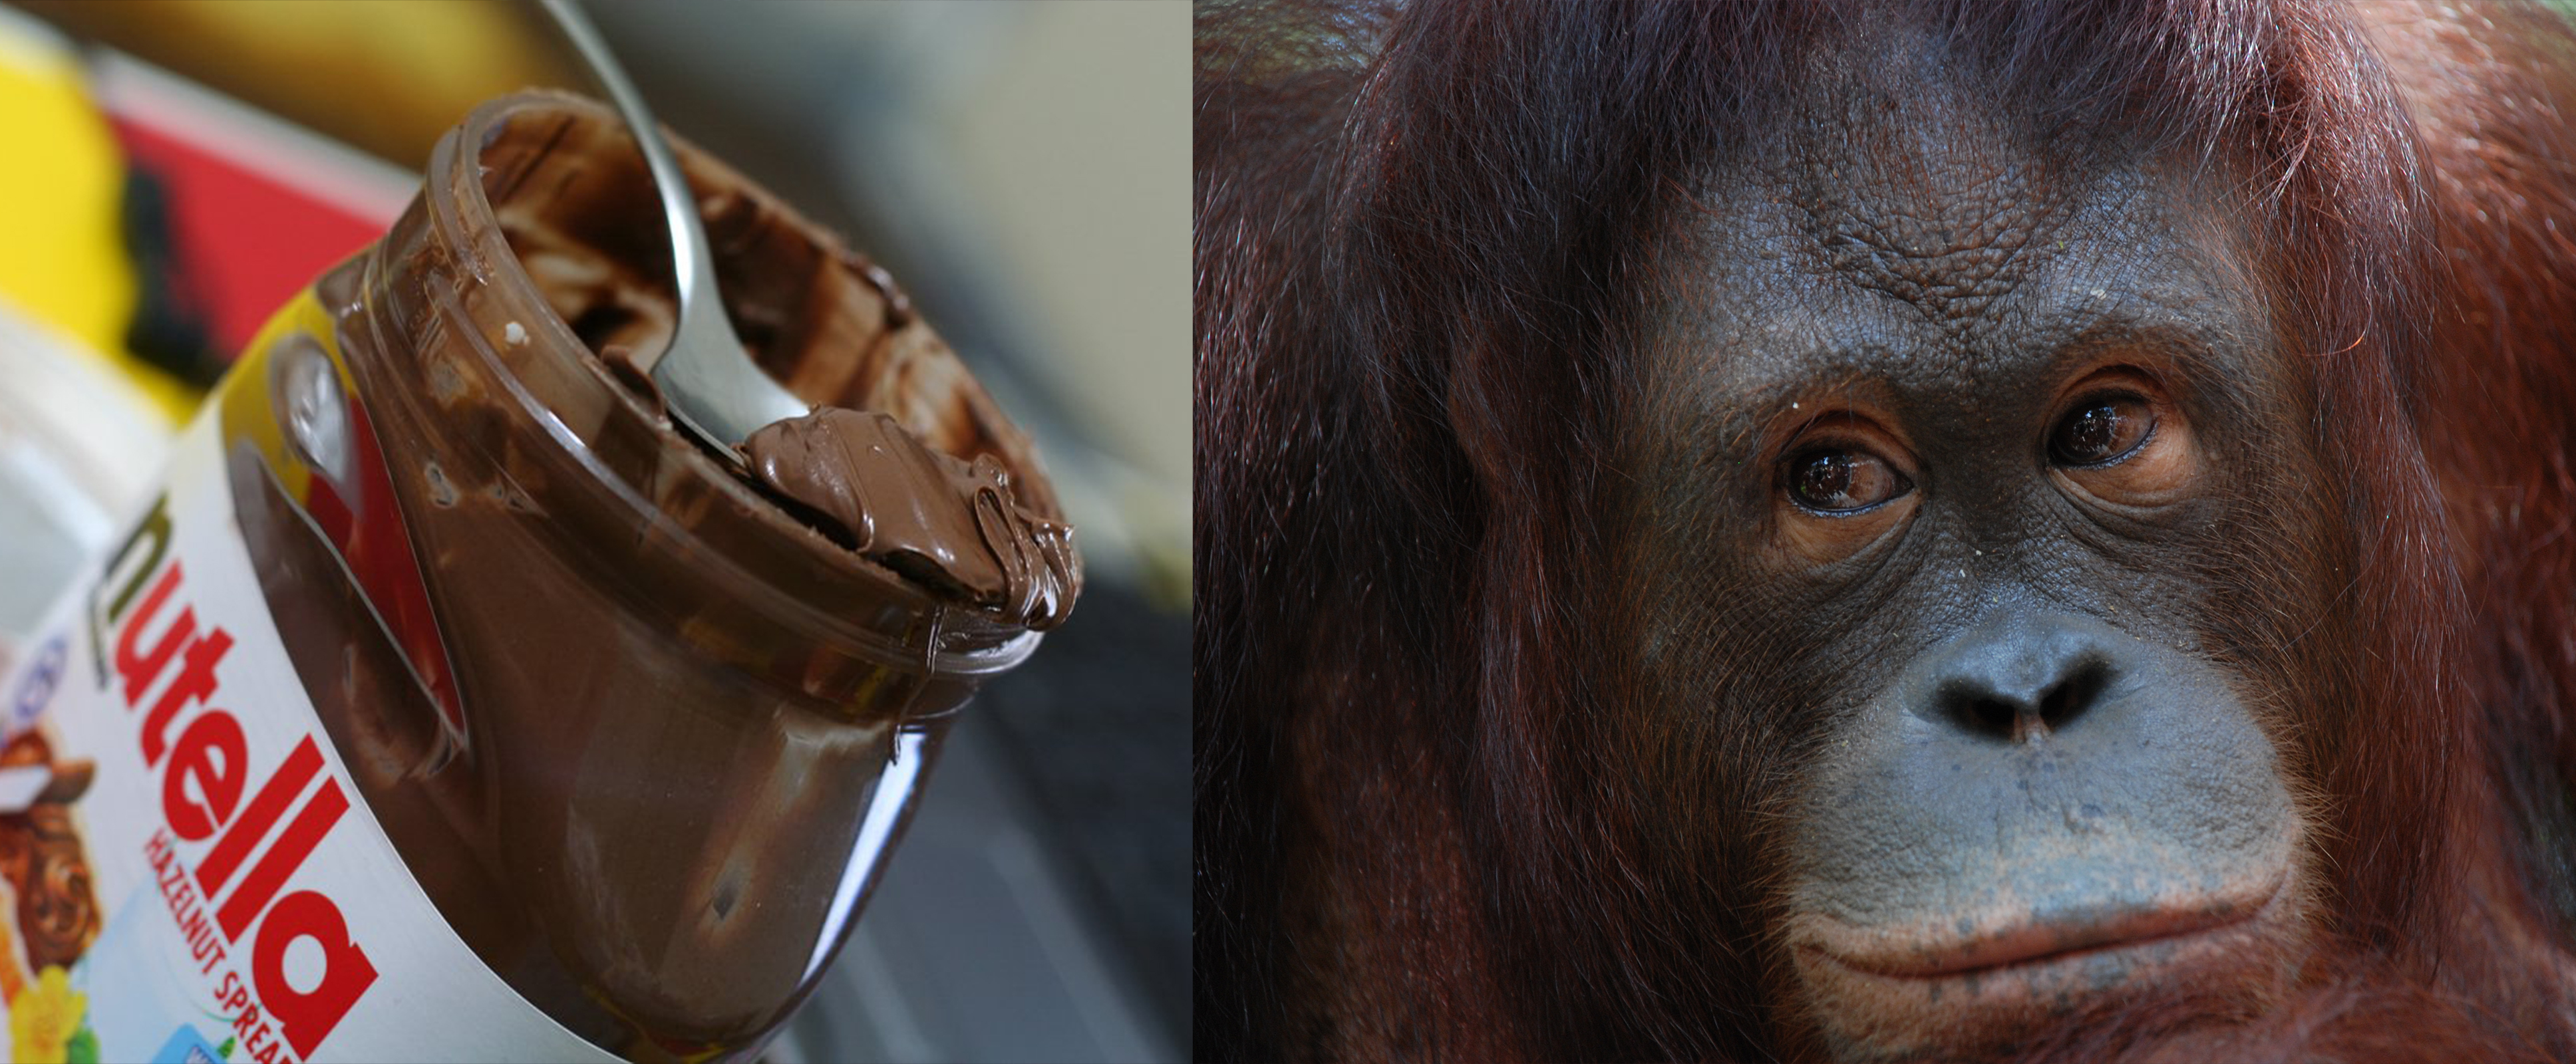 How your favorite chocolate is killing orangutans in Malaysia—and what you can do to avoid it.